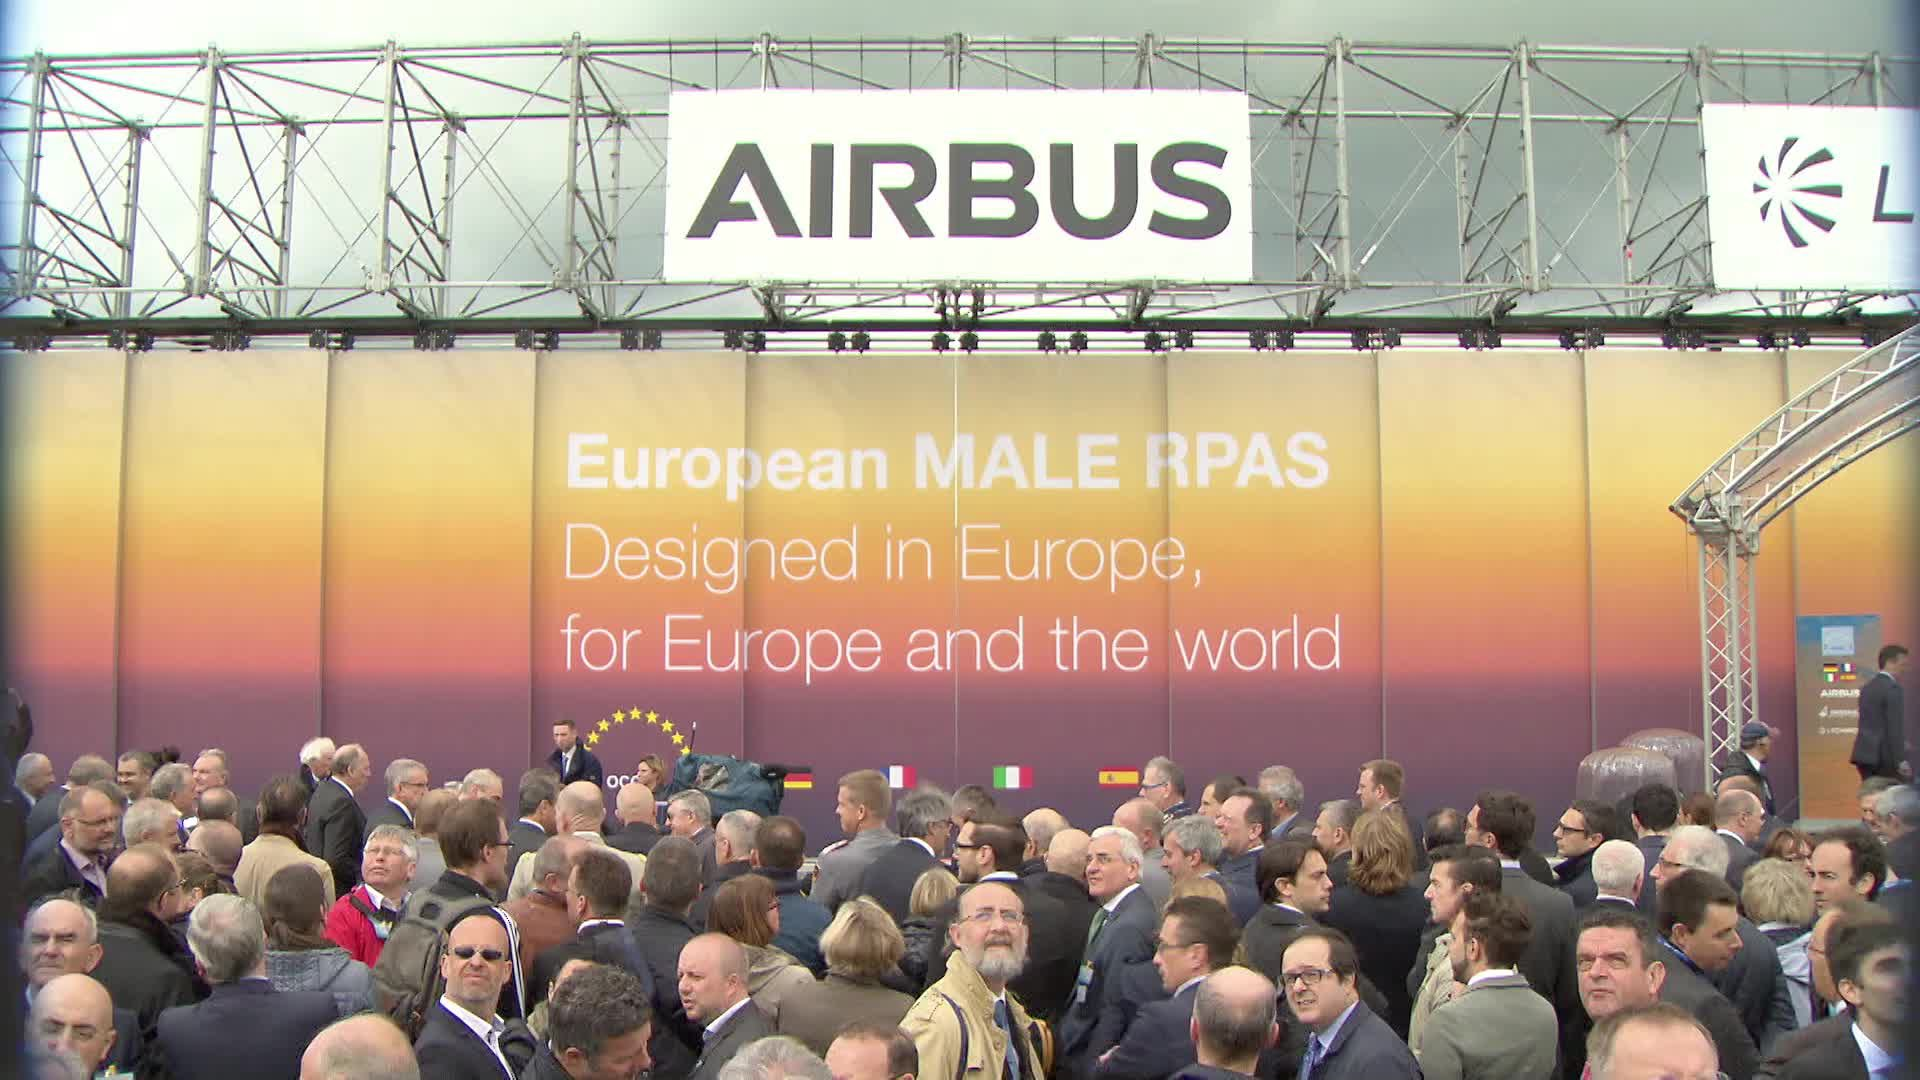 Watch the MALE RPAS unveiling ceremony